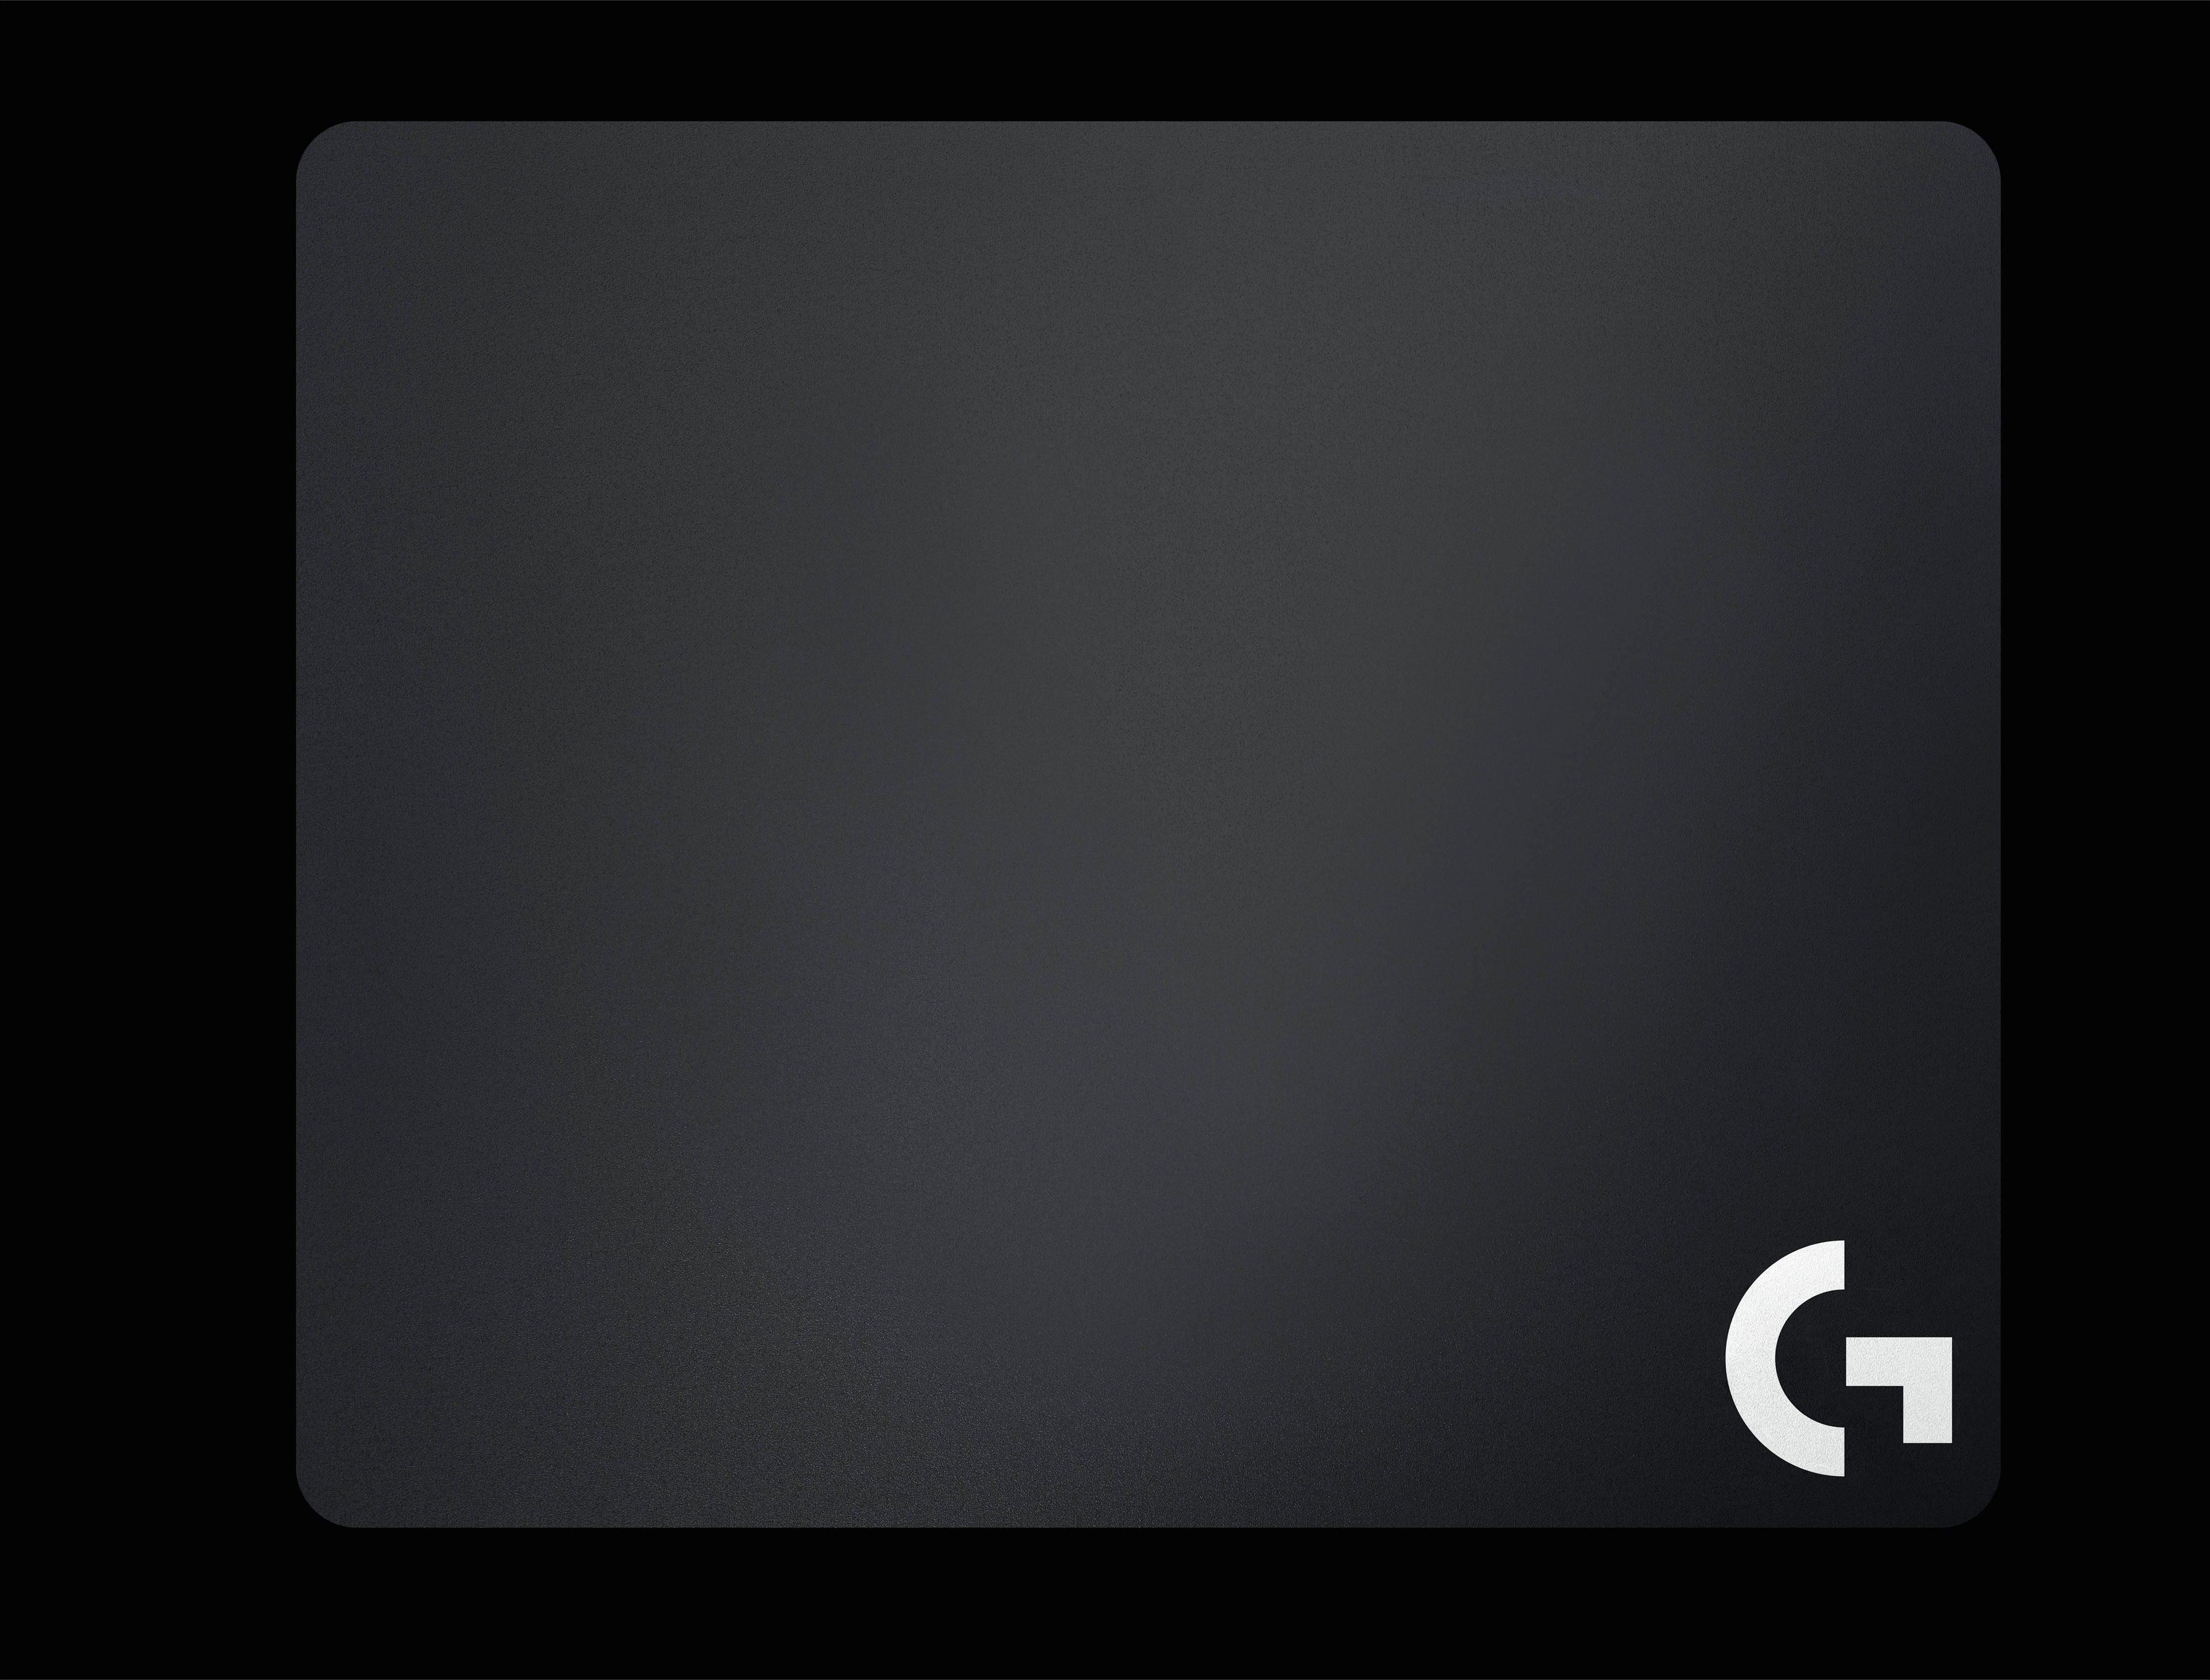 Logitech Games Gaming Pad »G240 CLOTH GAMING MOUSE PAD«